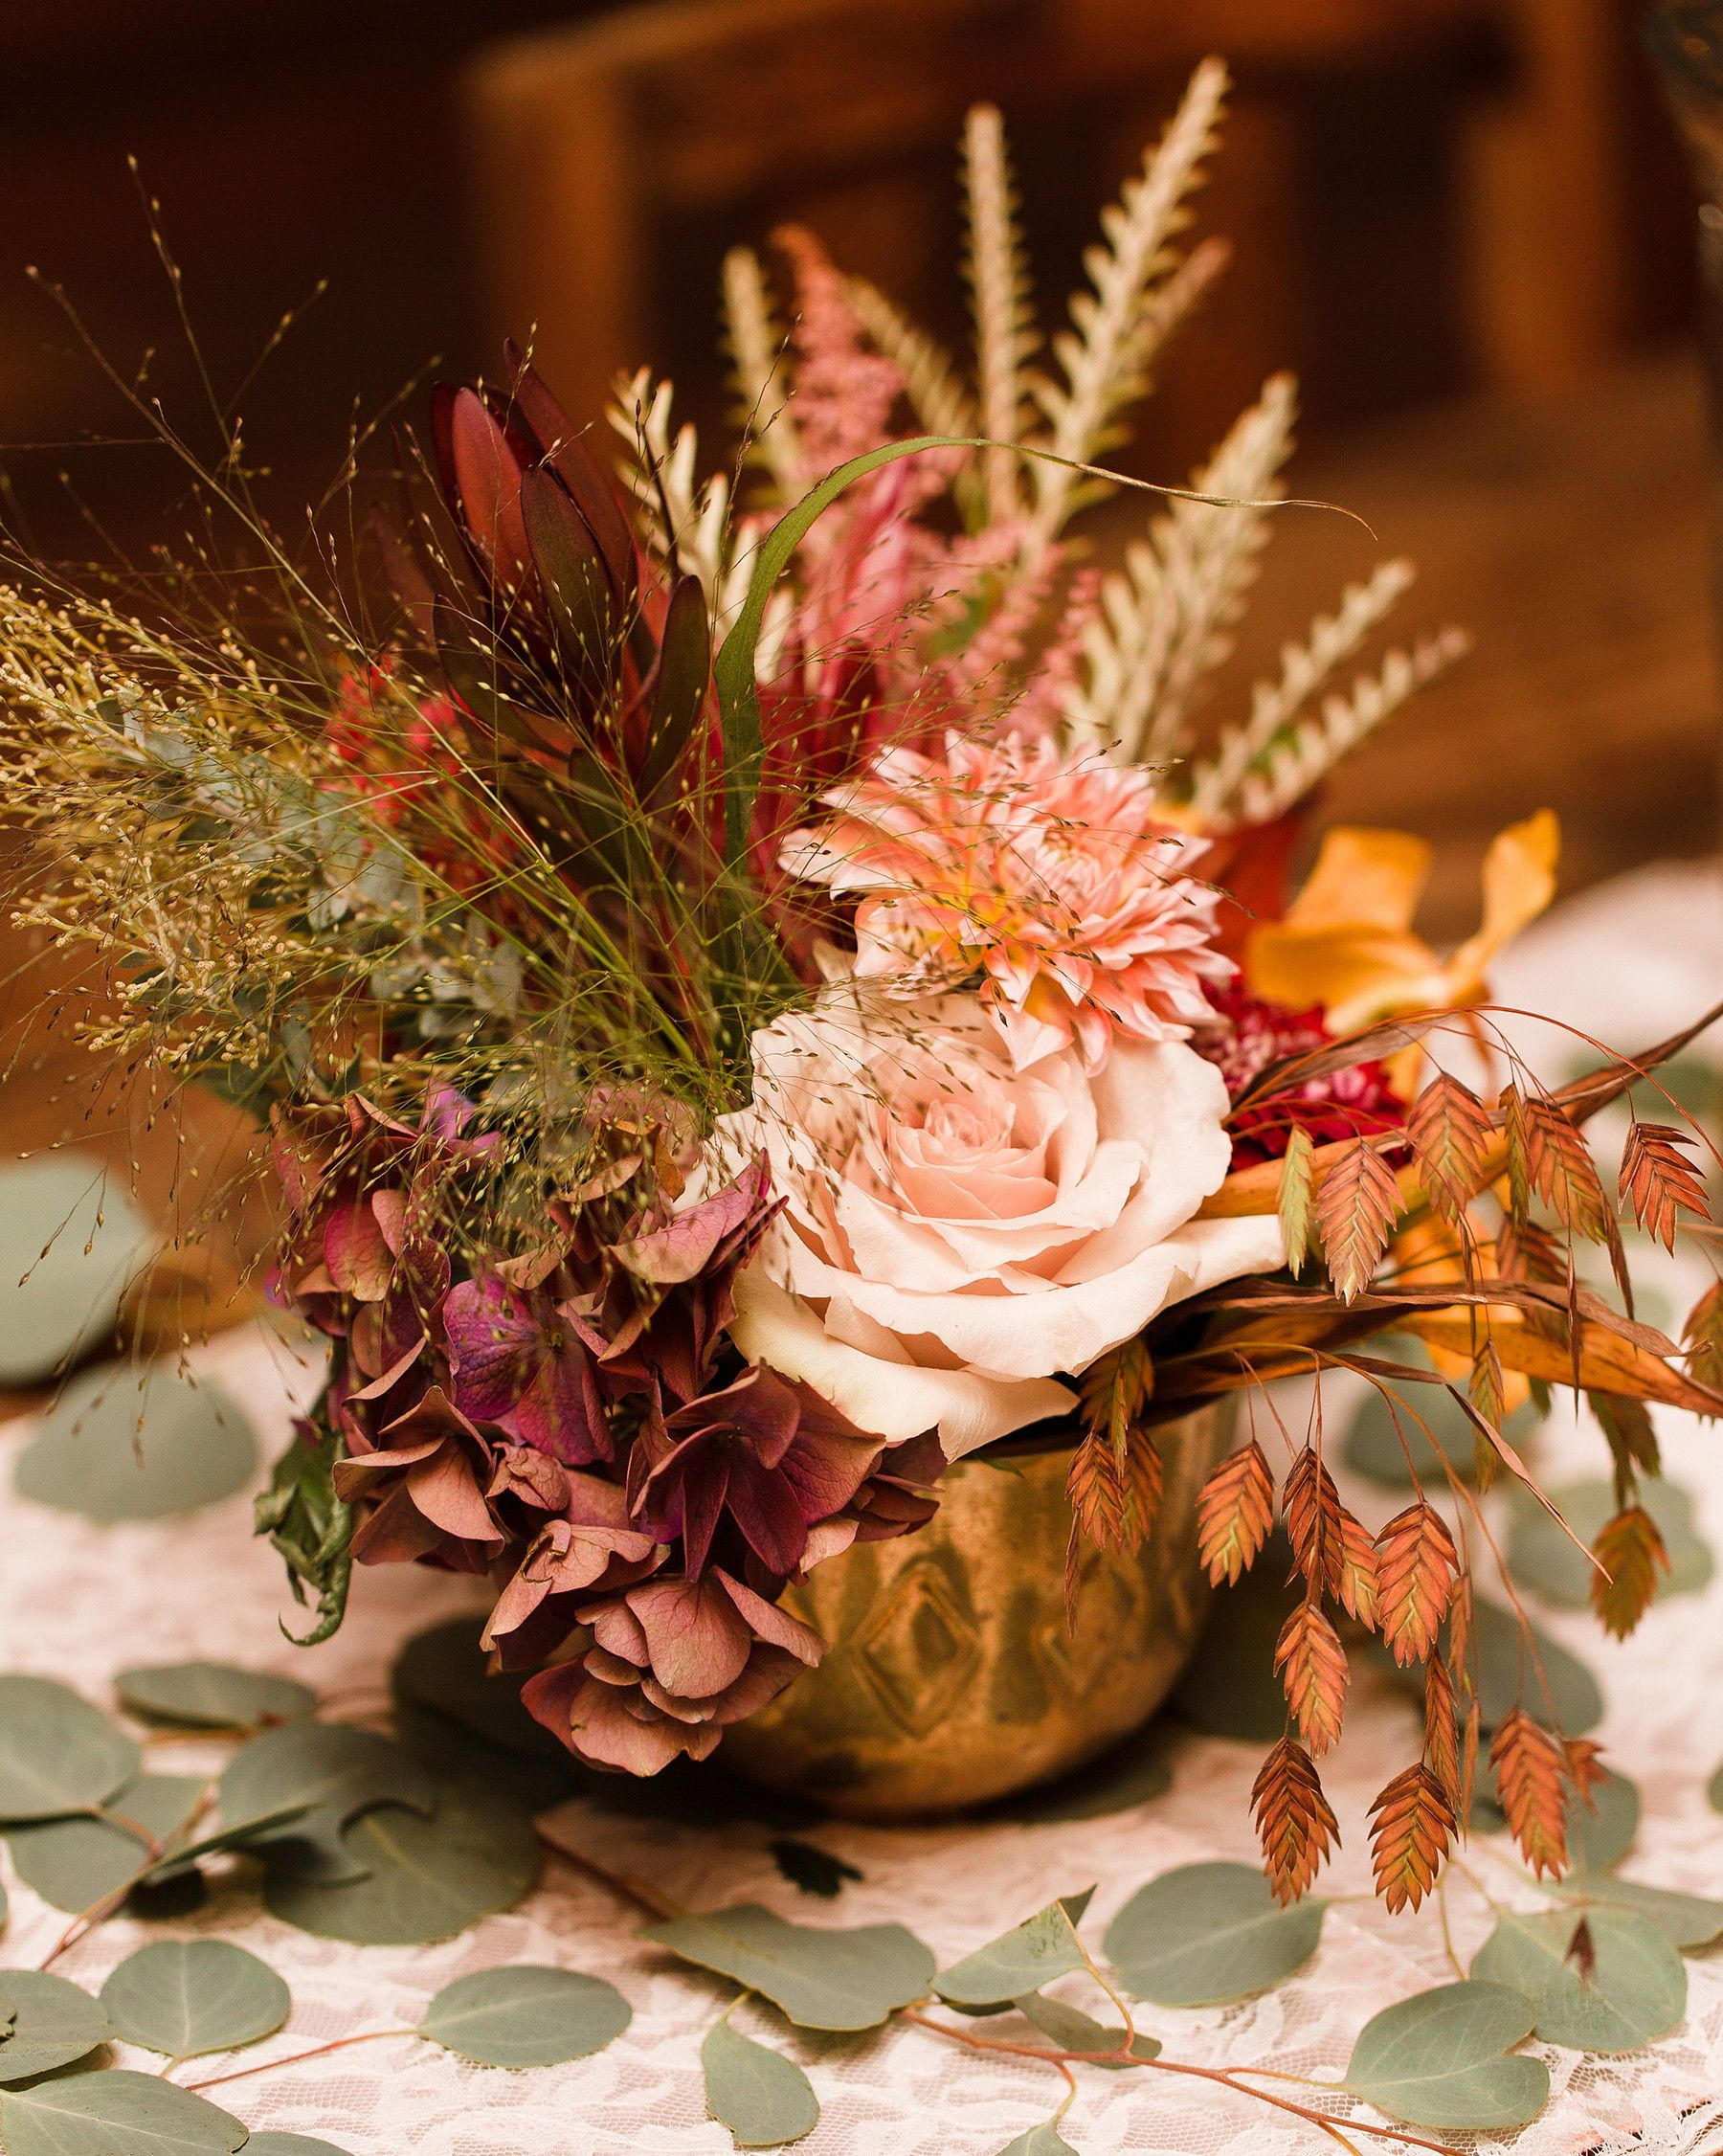 24 Dried Flower Arrangements That Are Perfect For A Fall Wedding Dried Flower Arrangements Dried Flower Bouquet Fall Flower Arrangements